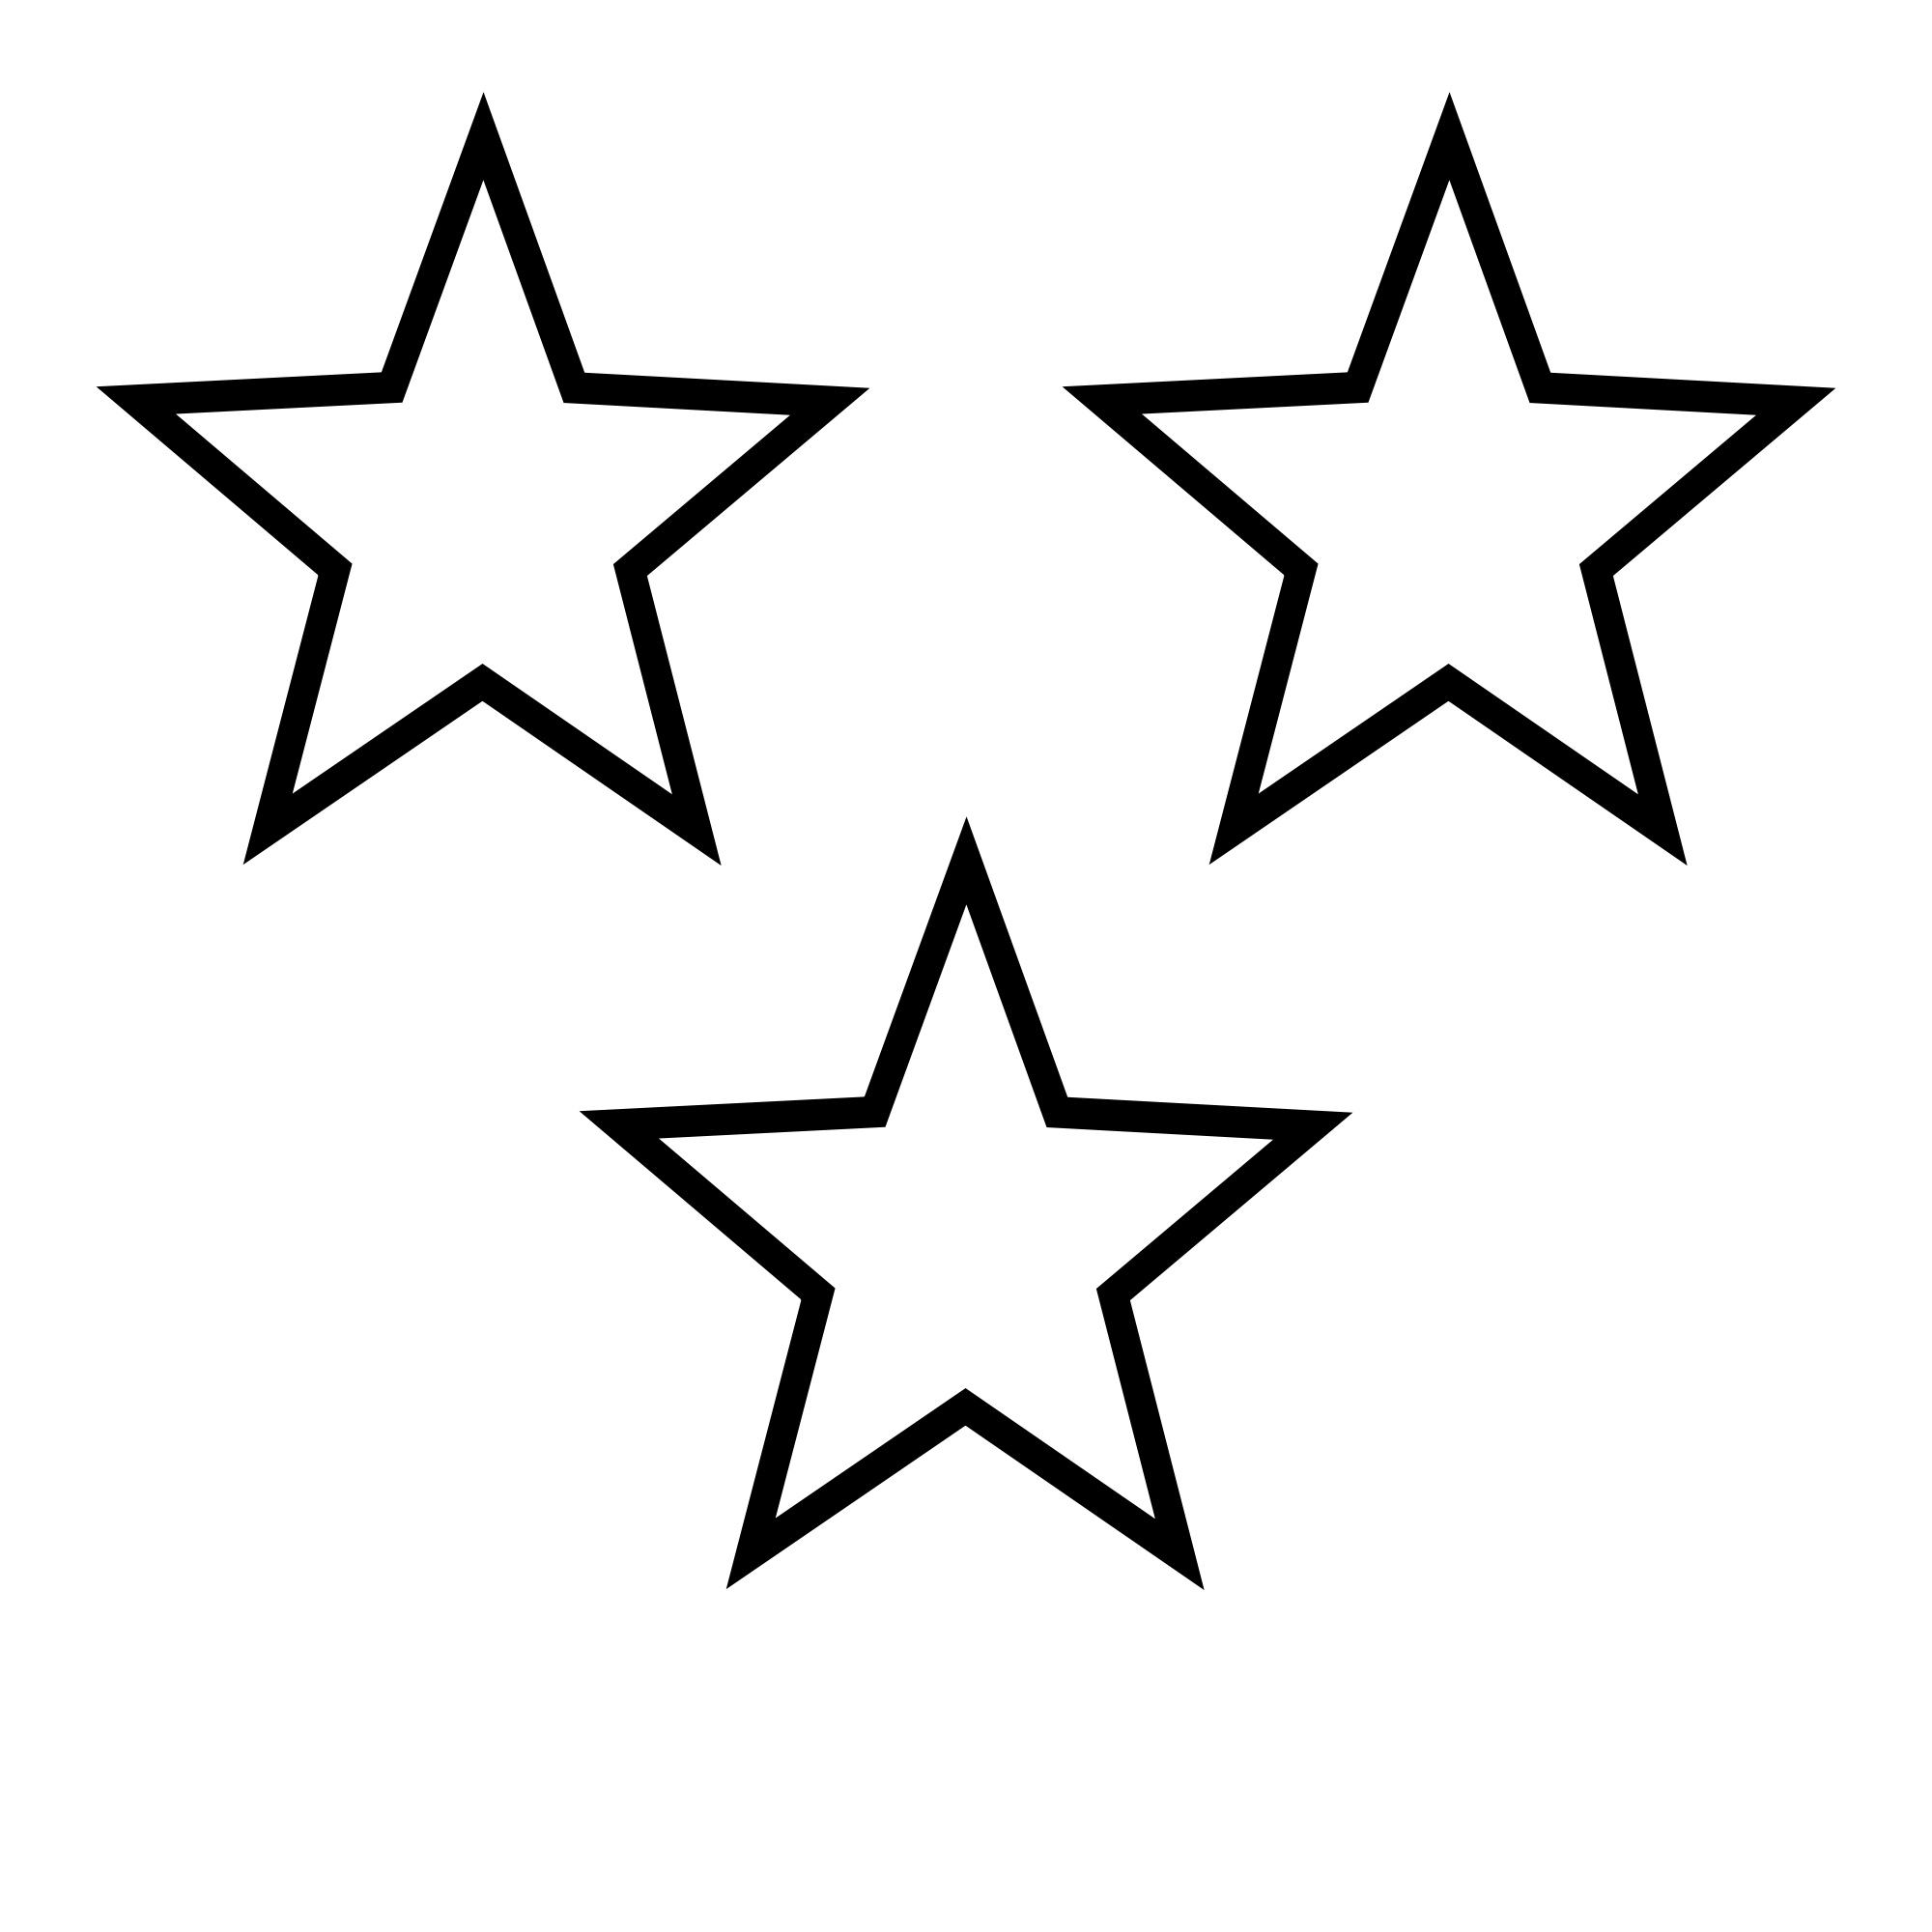 White Star Clipart Transparent Background.